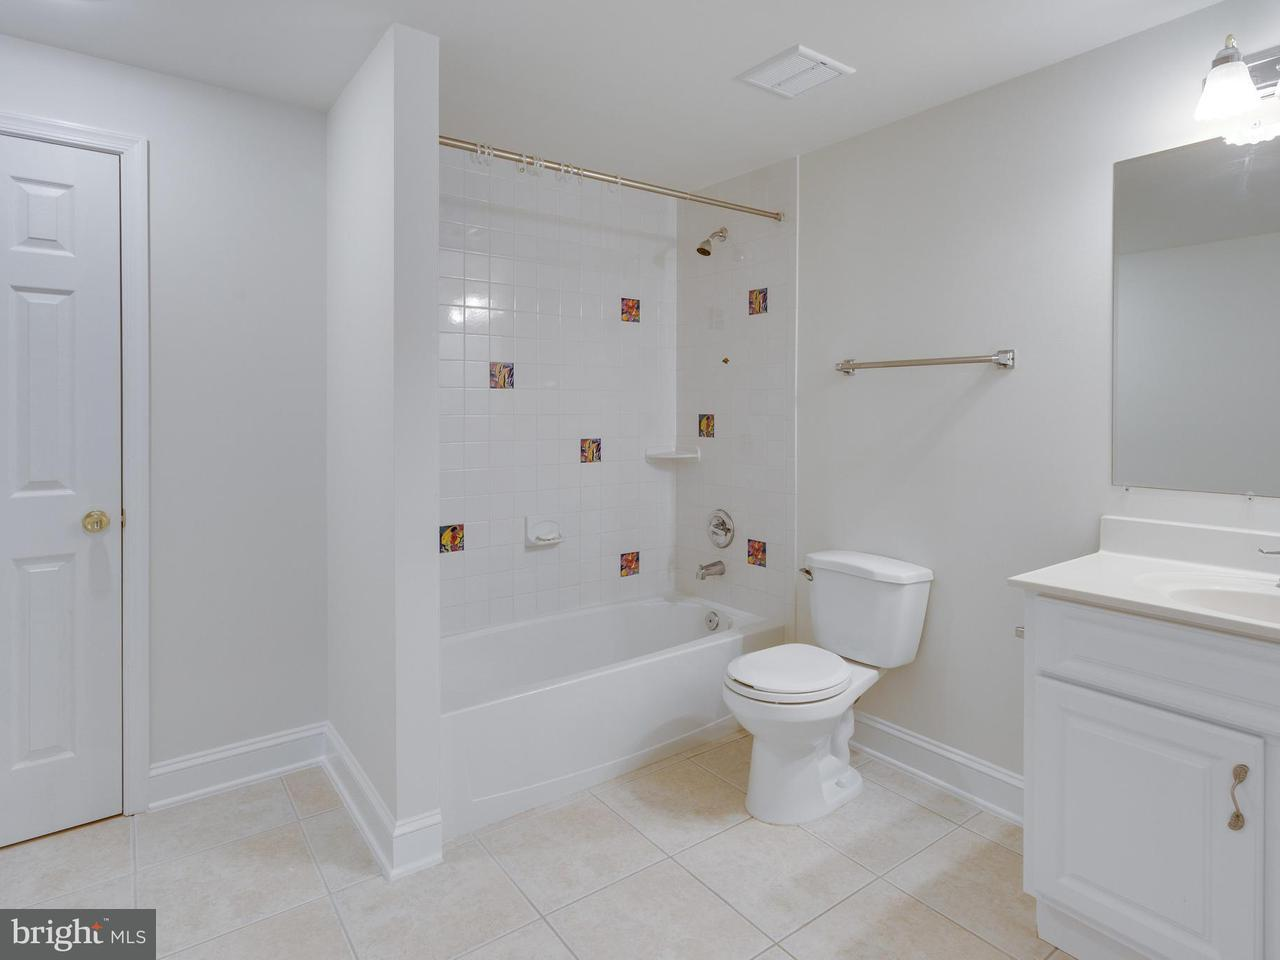 Additional photo for property listing at 9411 Old Reserve Way 9411 Old Reserve Way Fairfax, Virginia 22031 Verenigde Staten